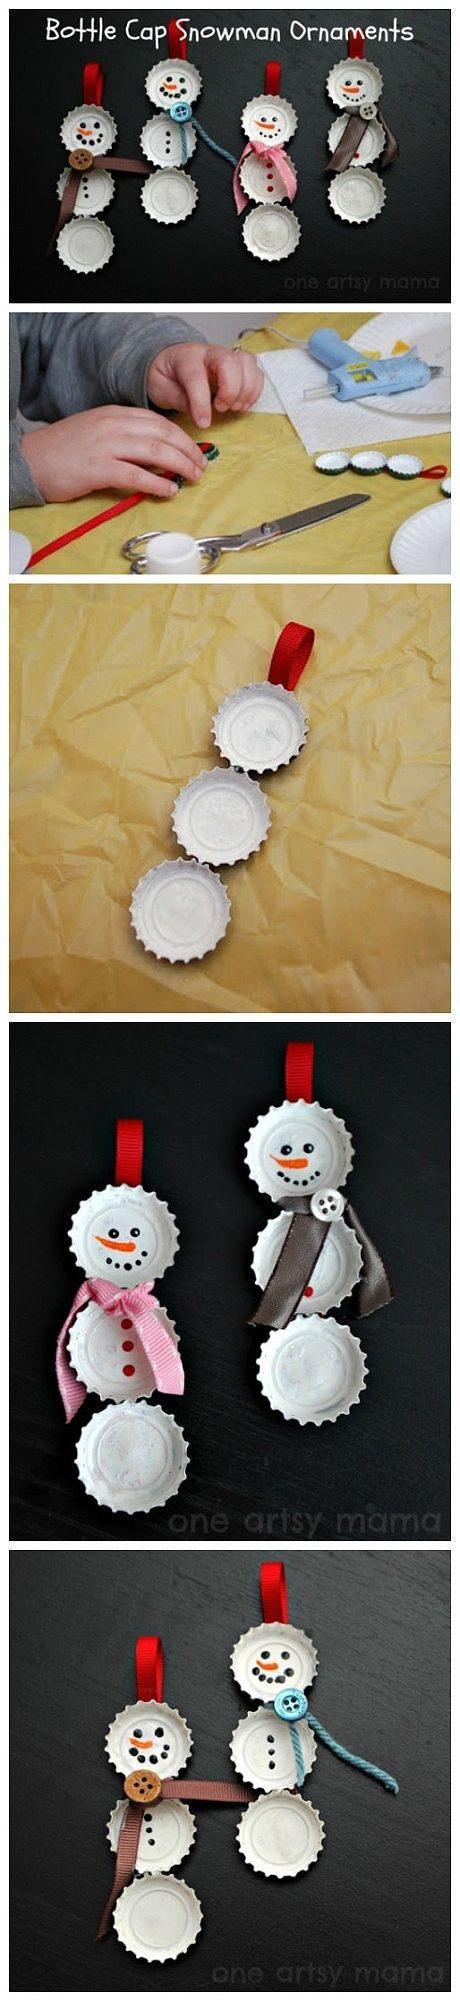 DIY – Bottle cap snowmen